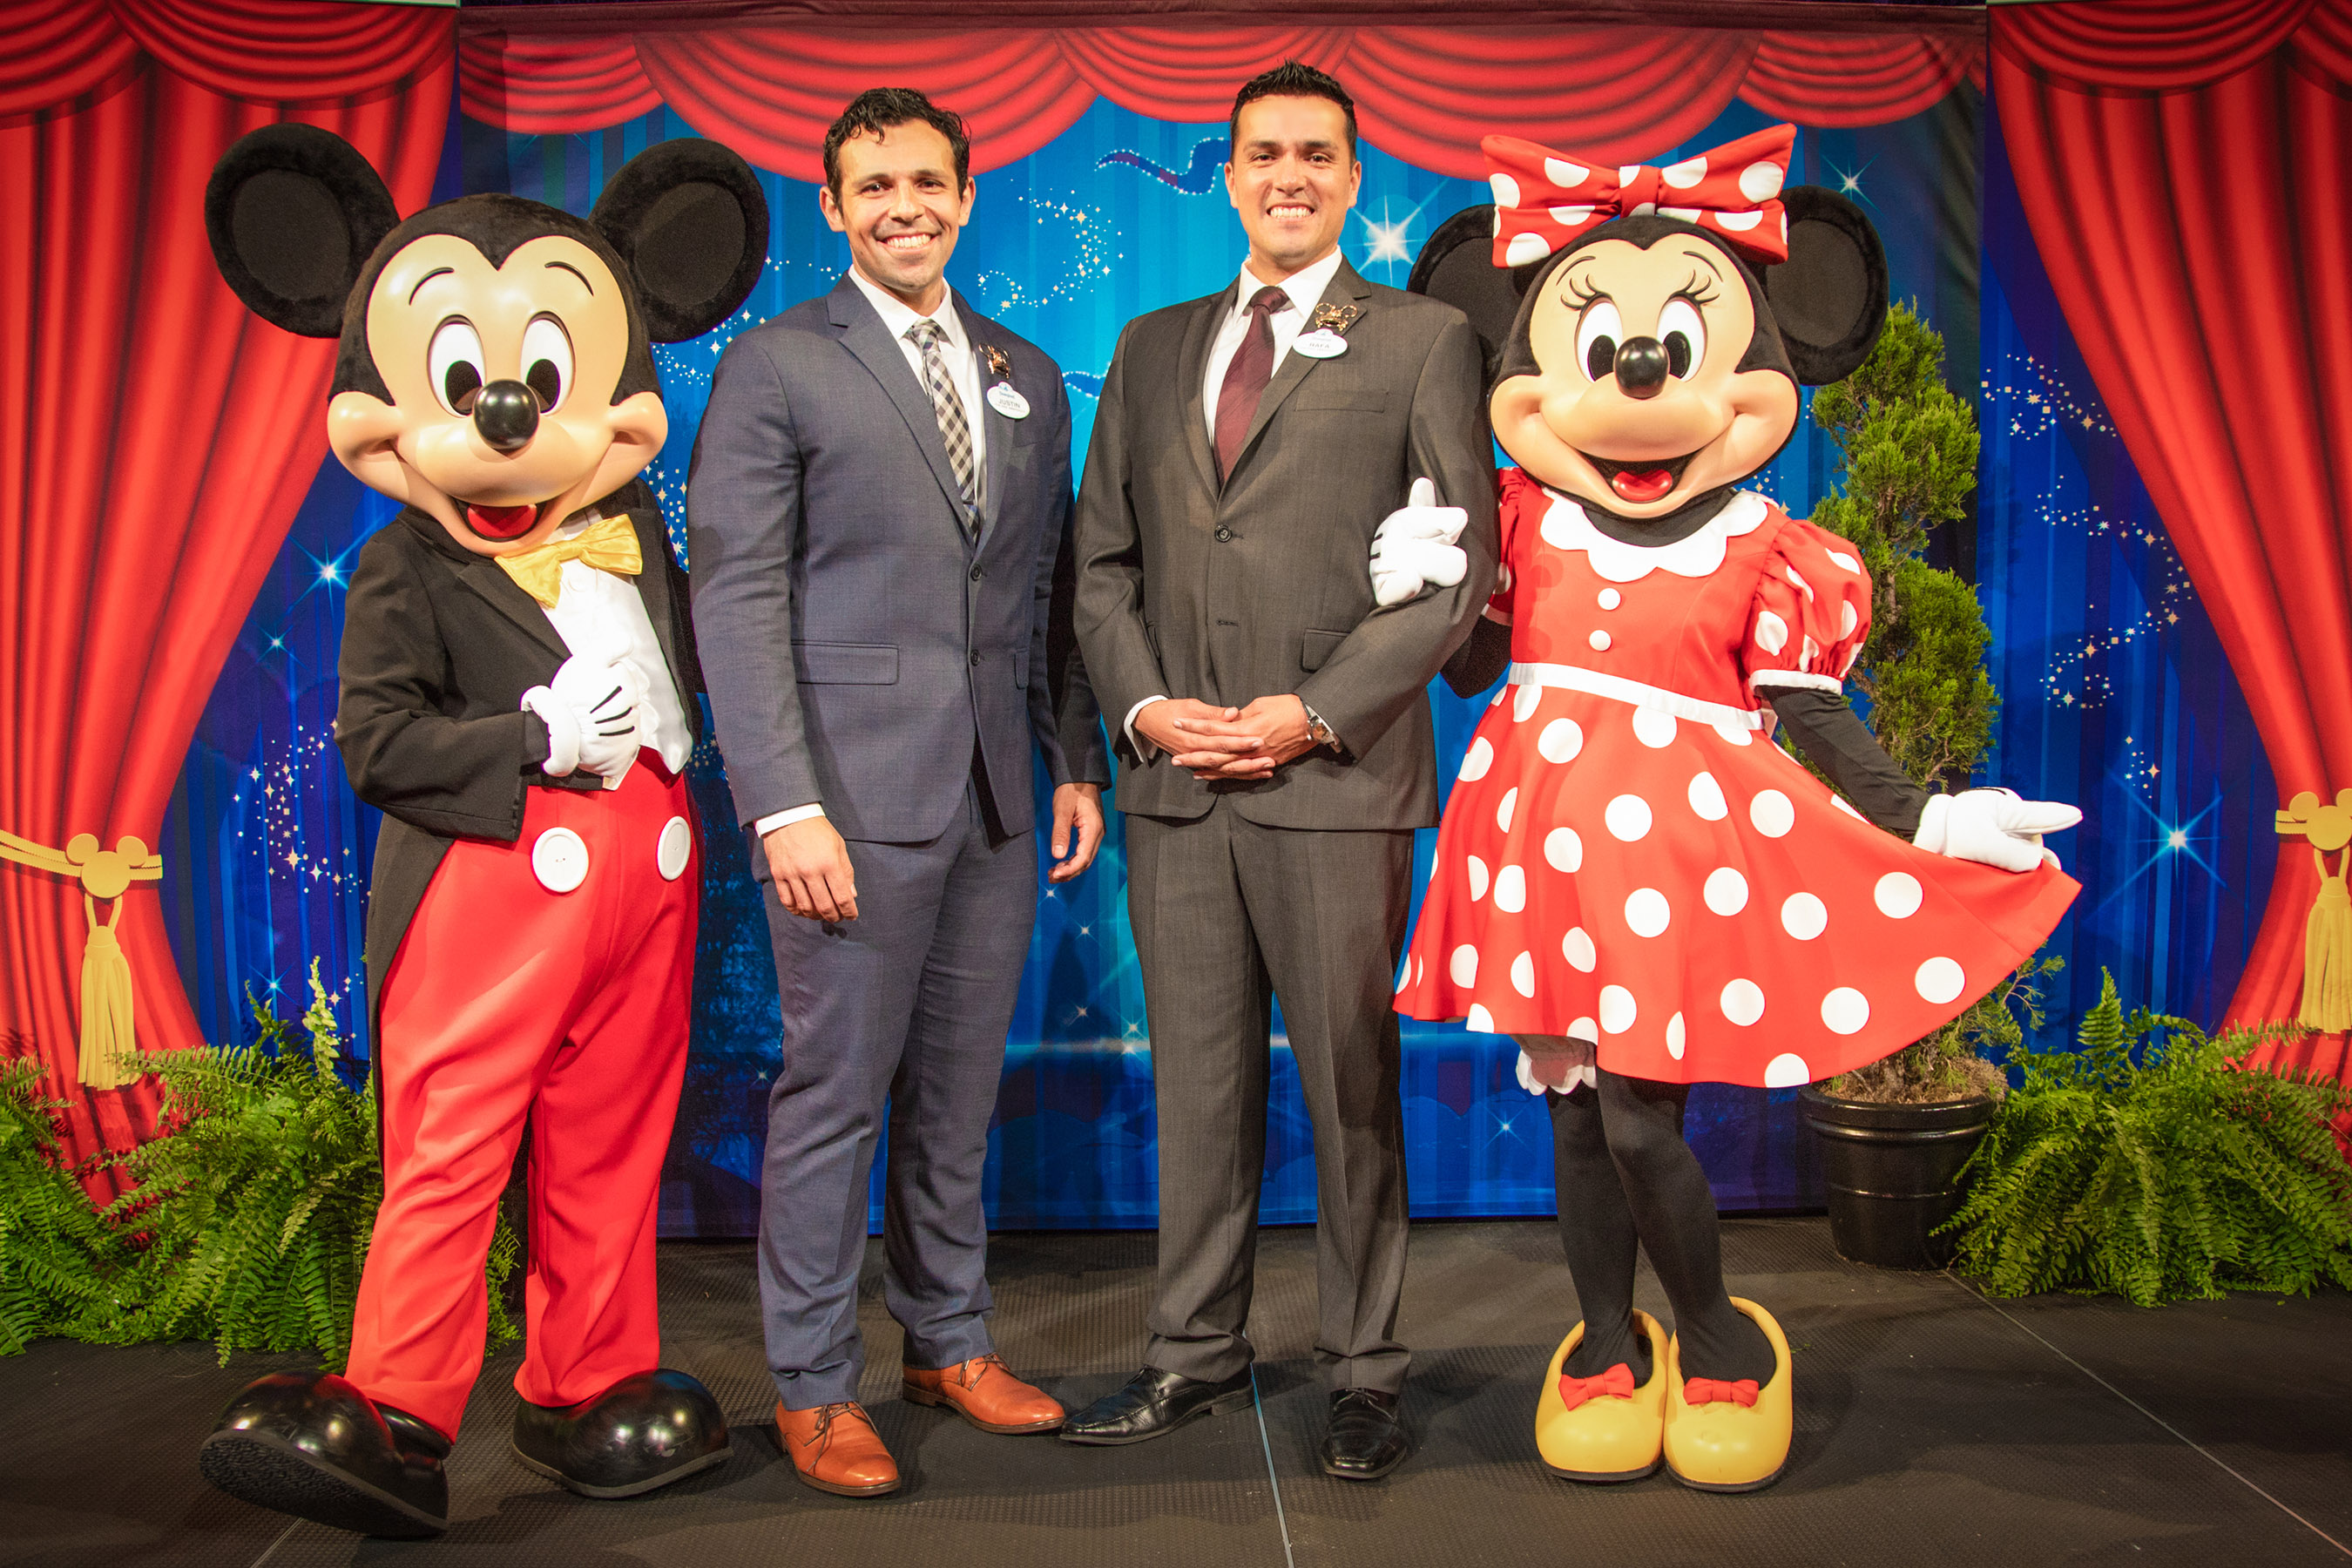 Disneyland Resort 2019-2020 Ambassador Team  In a tradition dating back to 1965, Disneyland Resort President Josh D'Amaro announced that cast members Justin Rapp and Rafa Barron will represent the Disneyland Resort and its 30,000 cast members as the 2019-2020 Disney Ambassadors. (Disneyland Resort)